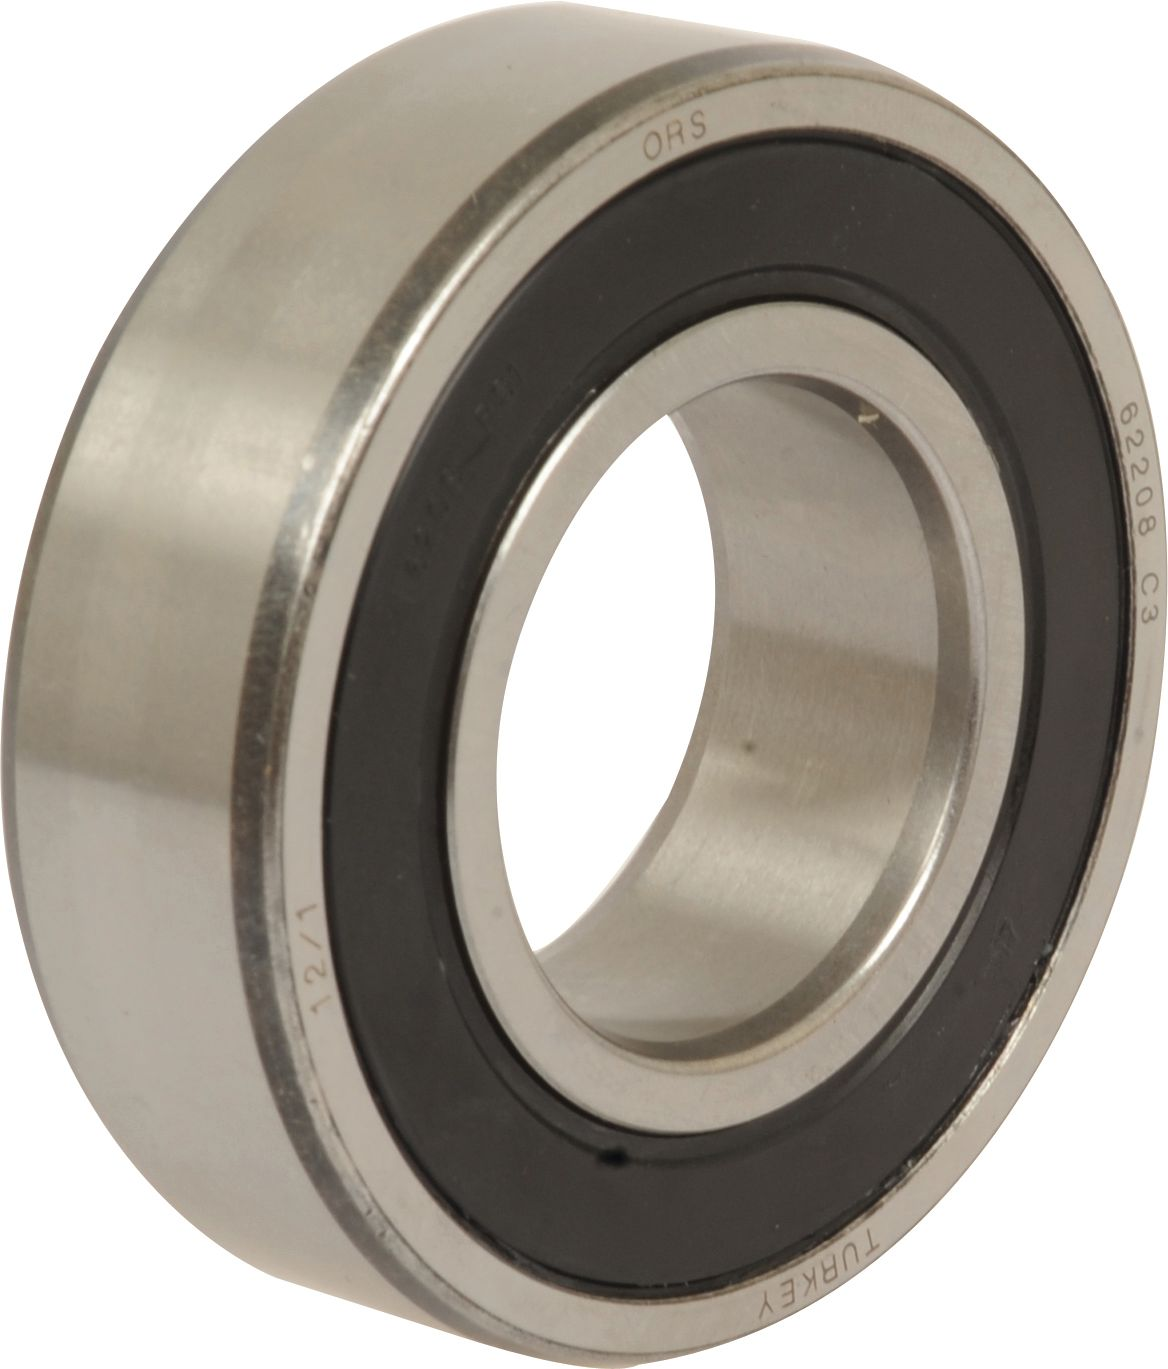 ALLIS CHALMERS DEEP GROOVE BEARING 26822